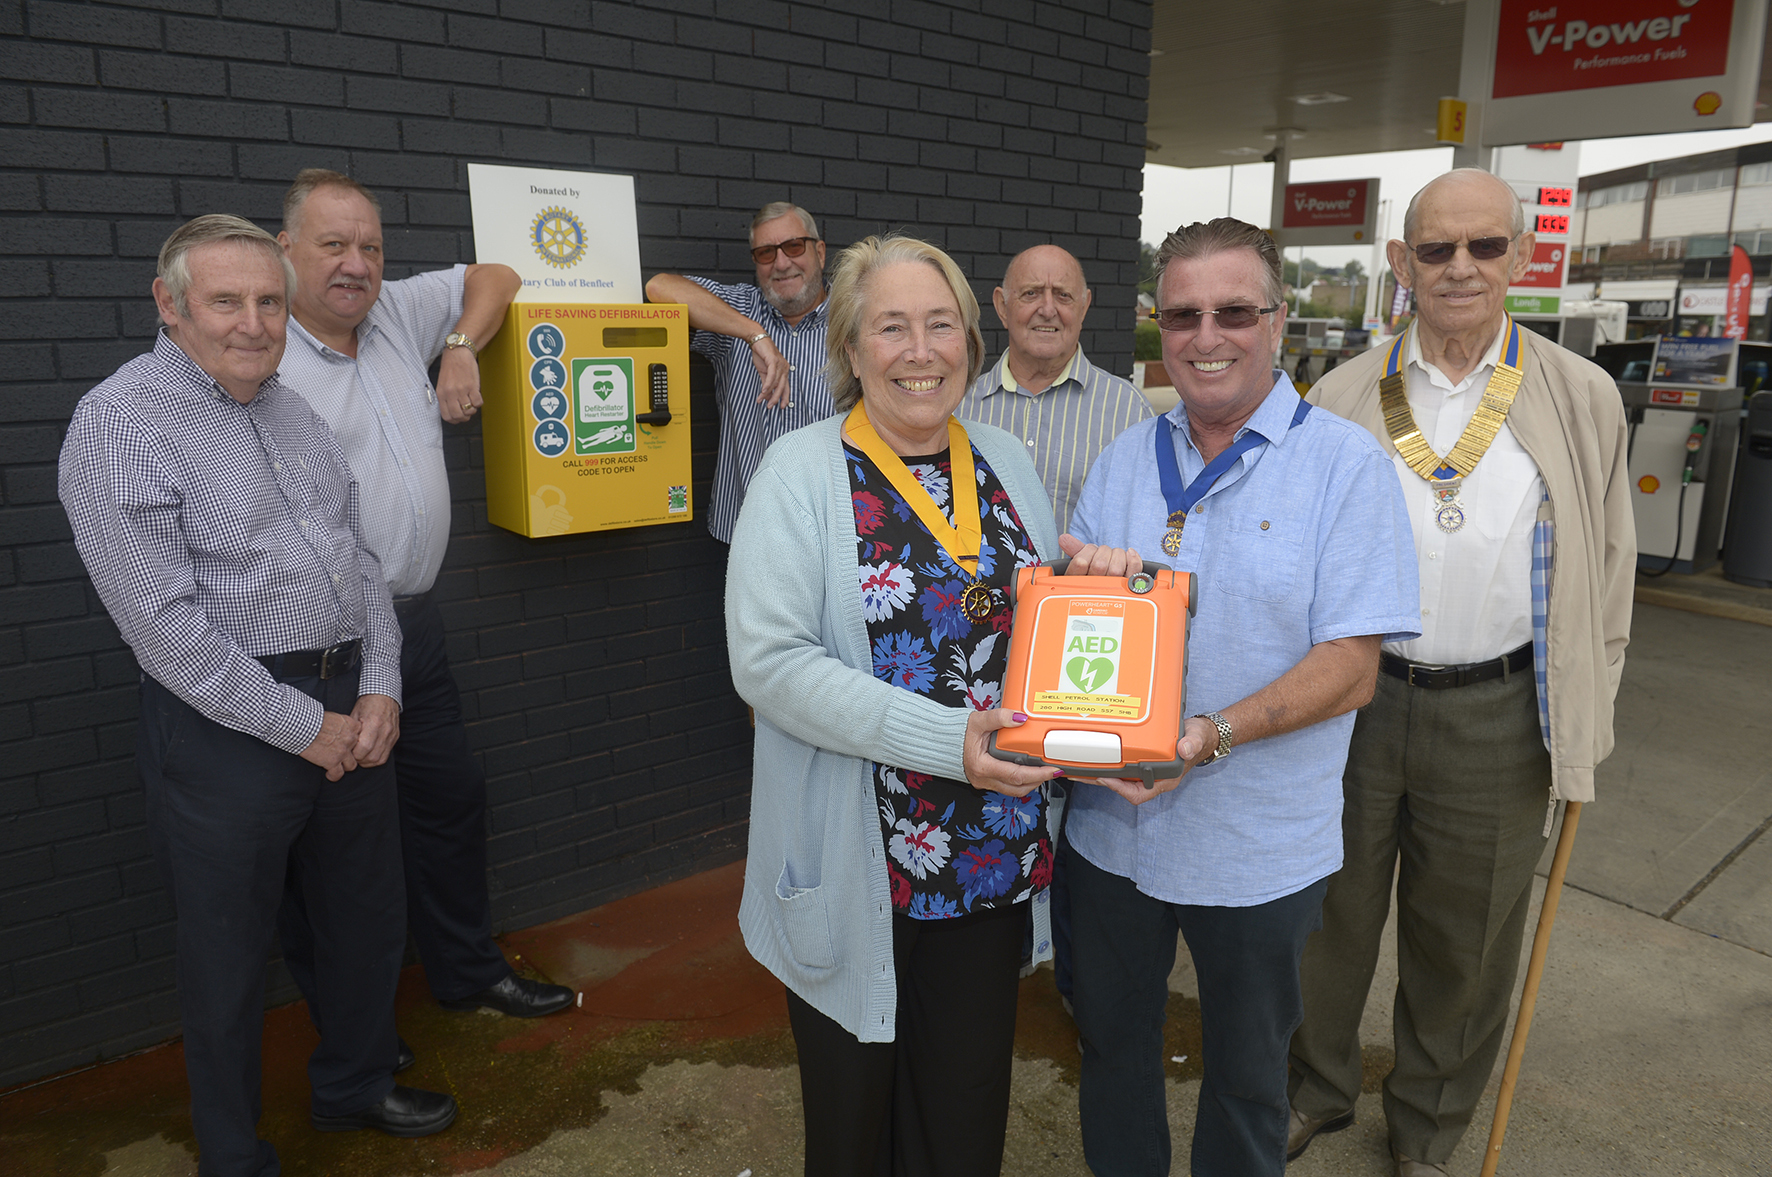 Jim Dove, Tony Elliott, Lewis Joiner, Susan Dixon, Barry Rutherford, Ian smith and Roger Gilbert..Shell Garage, 280 High Road, Benfleet.Community defibrillator and cabinet been donated by Benfleet Rotary..